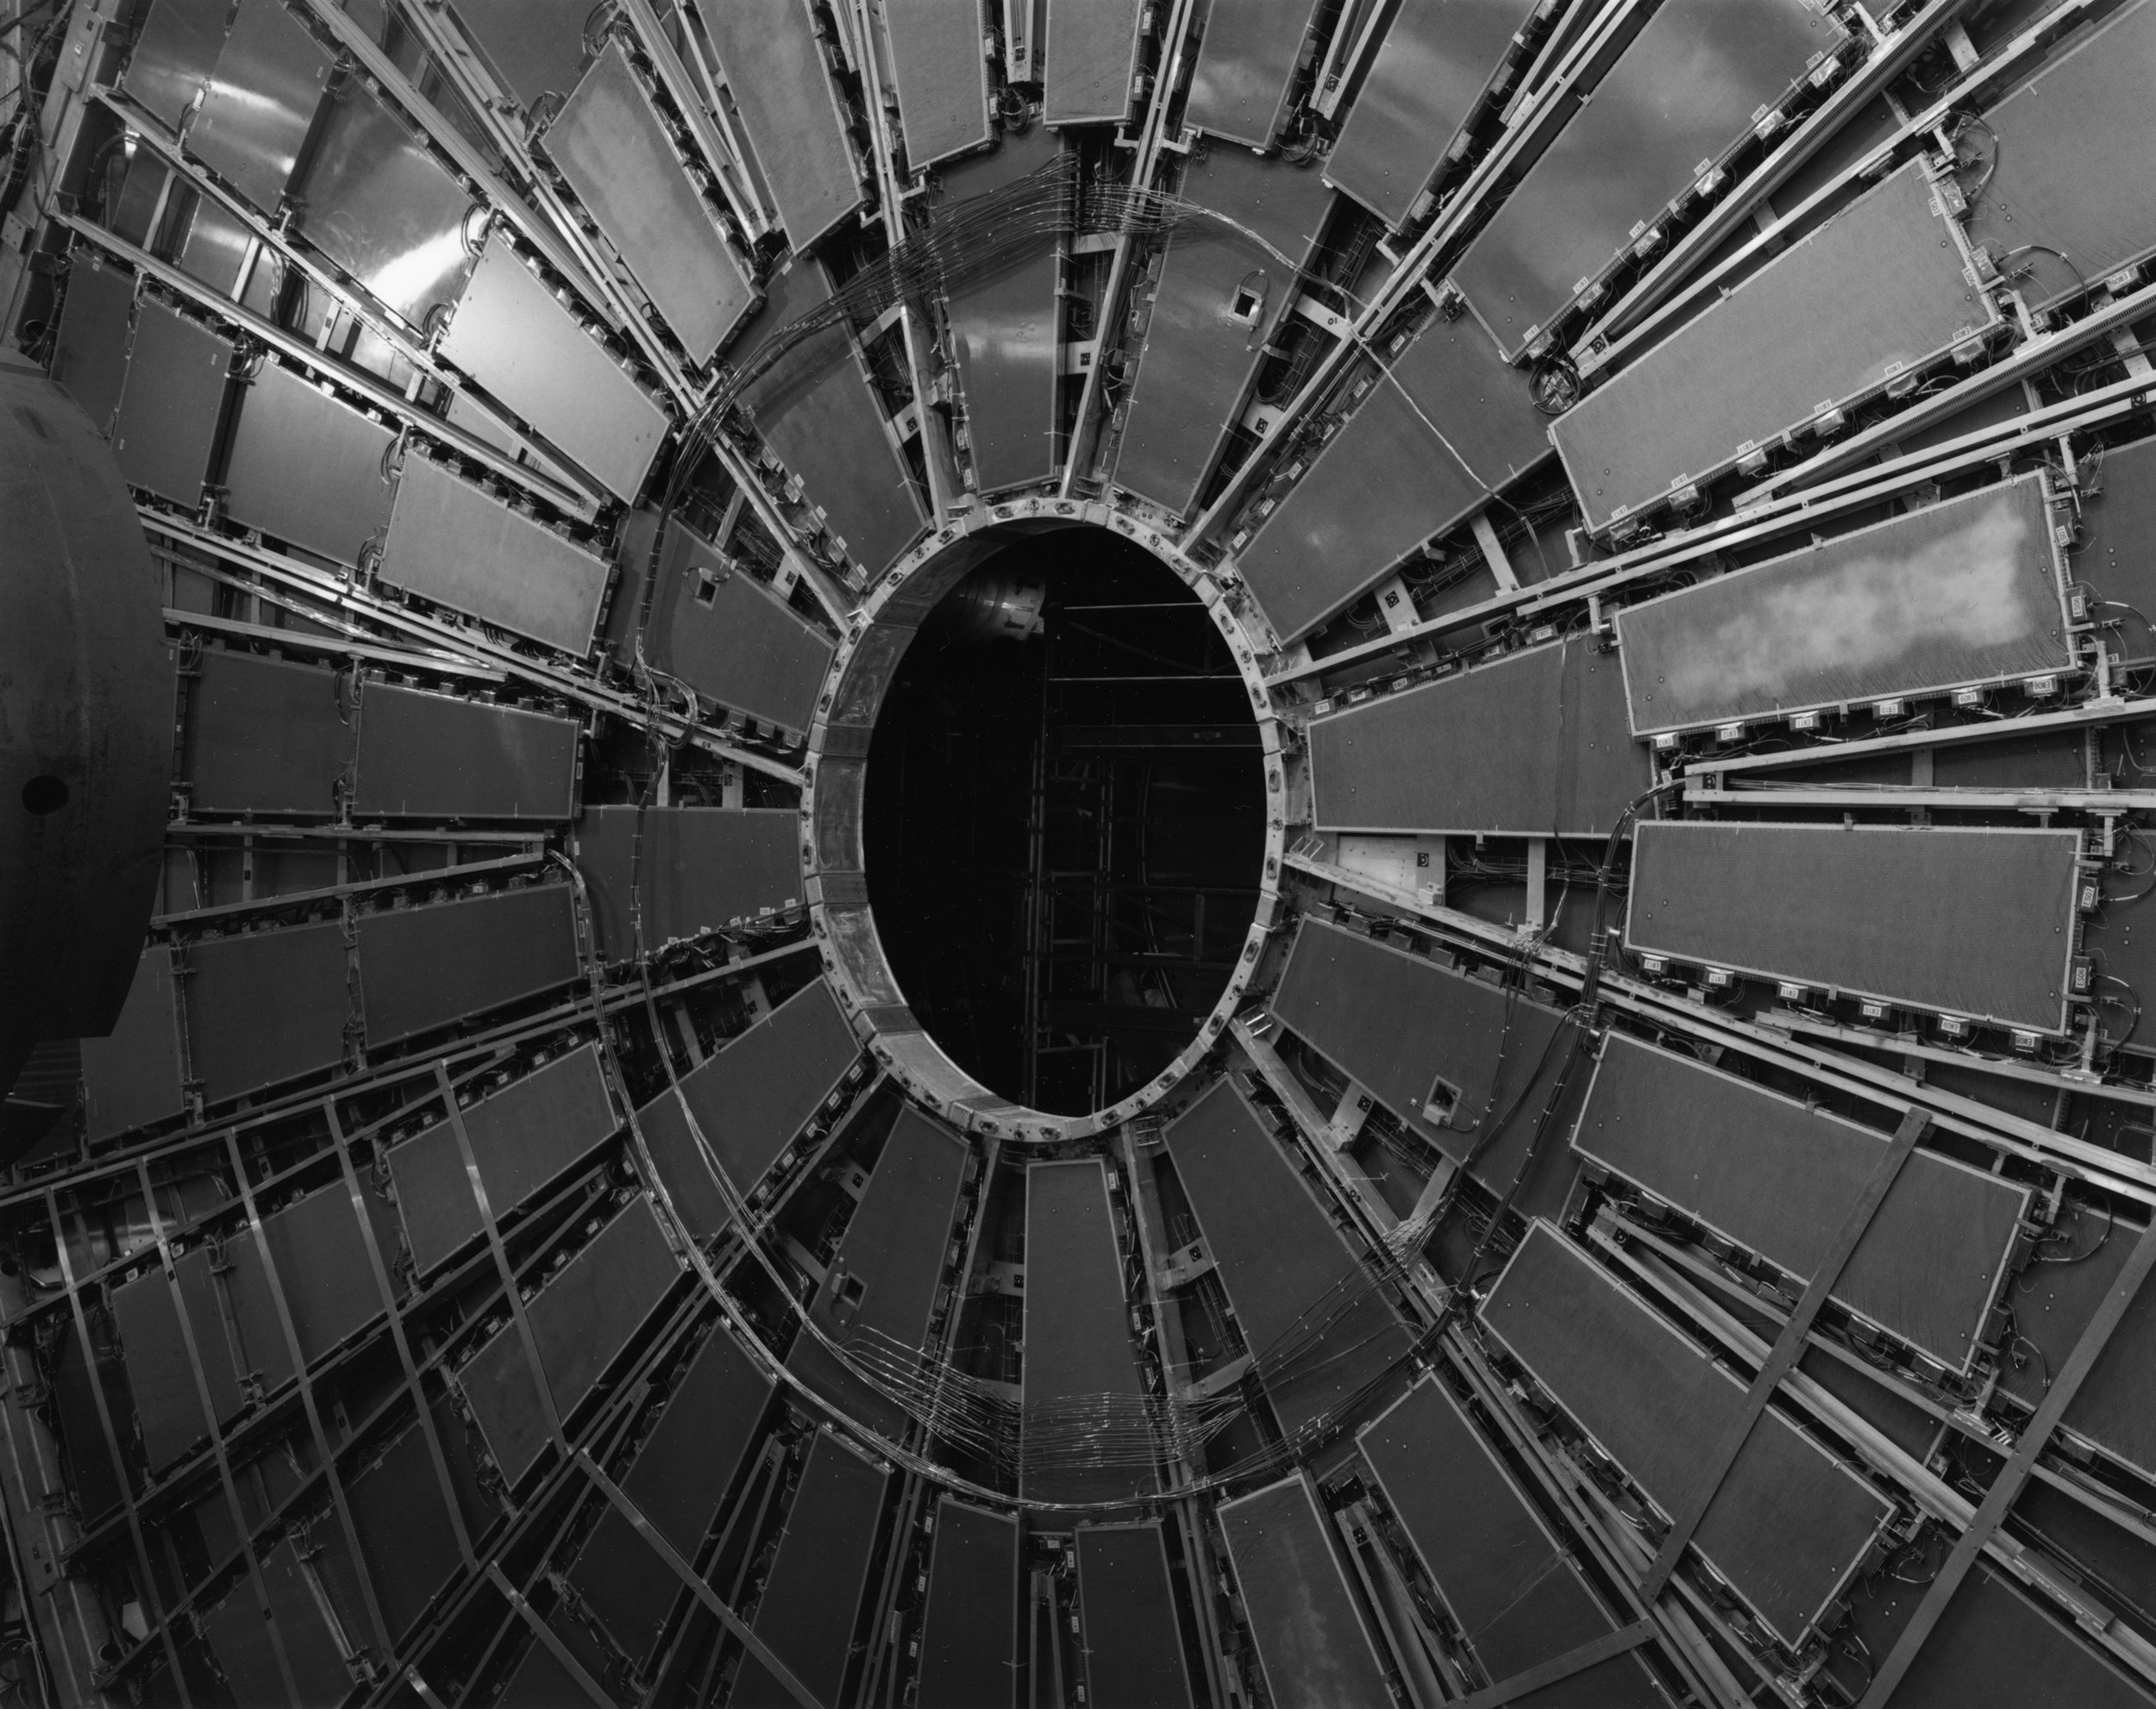 TGC Wheel, ATLAS Muon Spectrometer, Large Hadron Collider, CERN, Switzerland, 2006